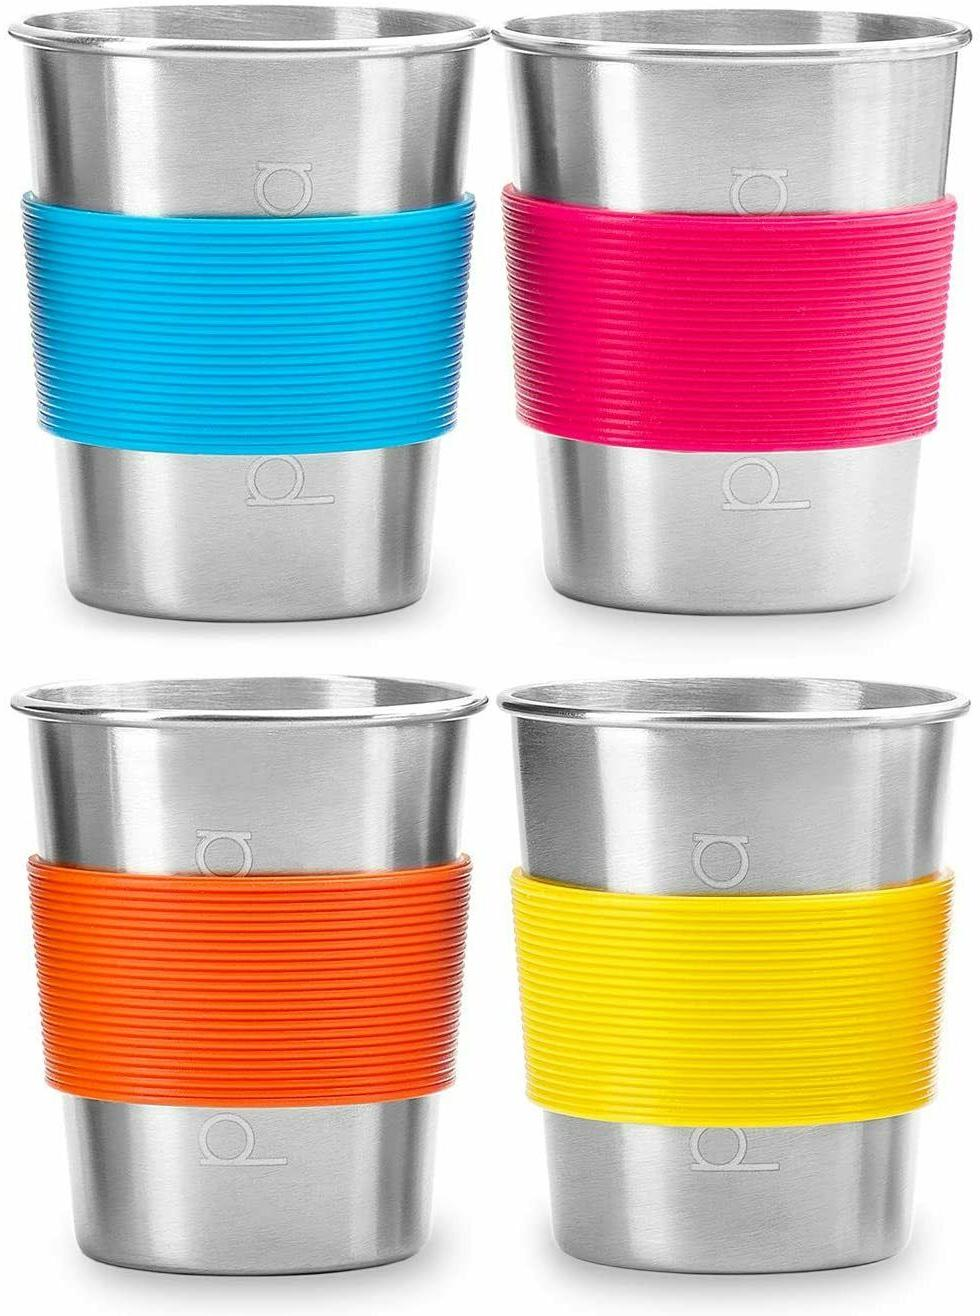 4pk 8oz stainless steel cups for kids